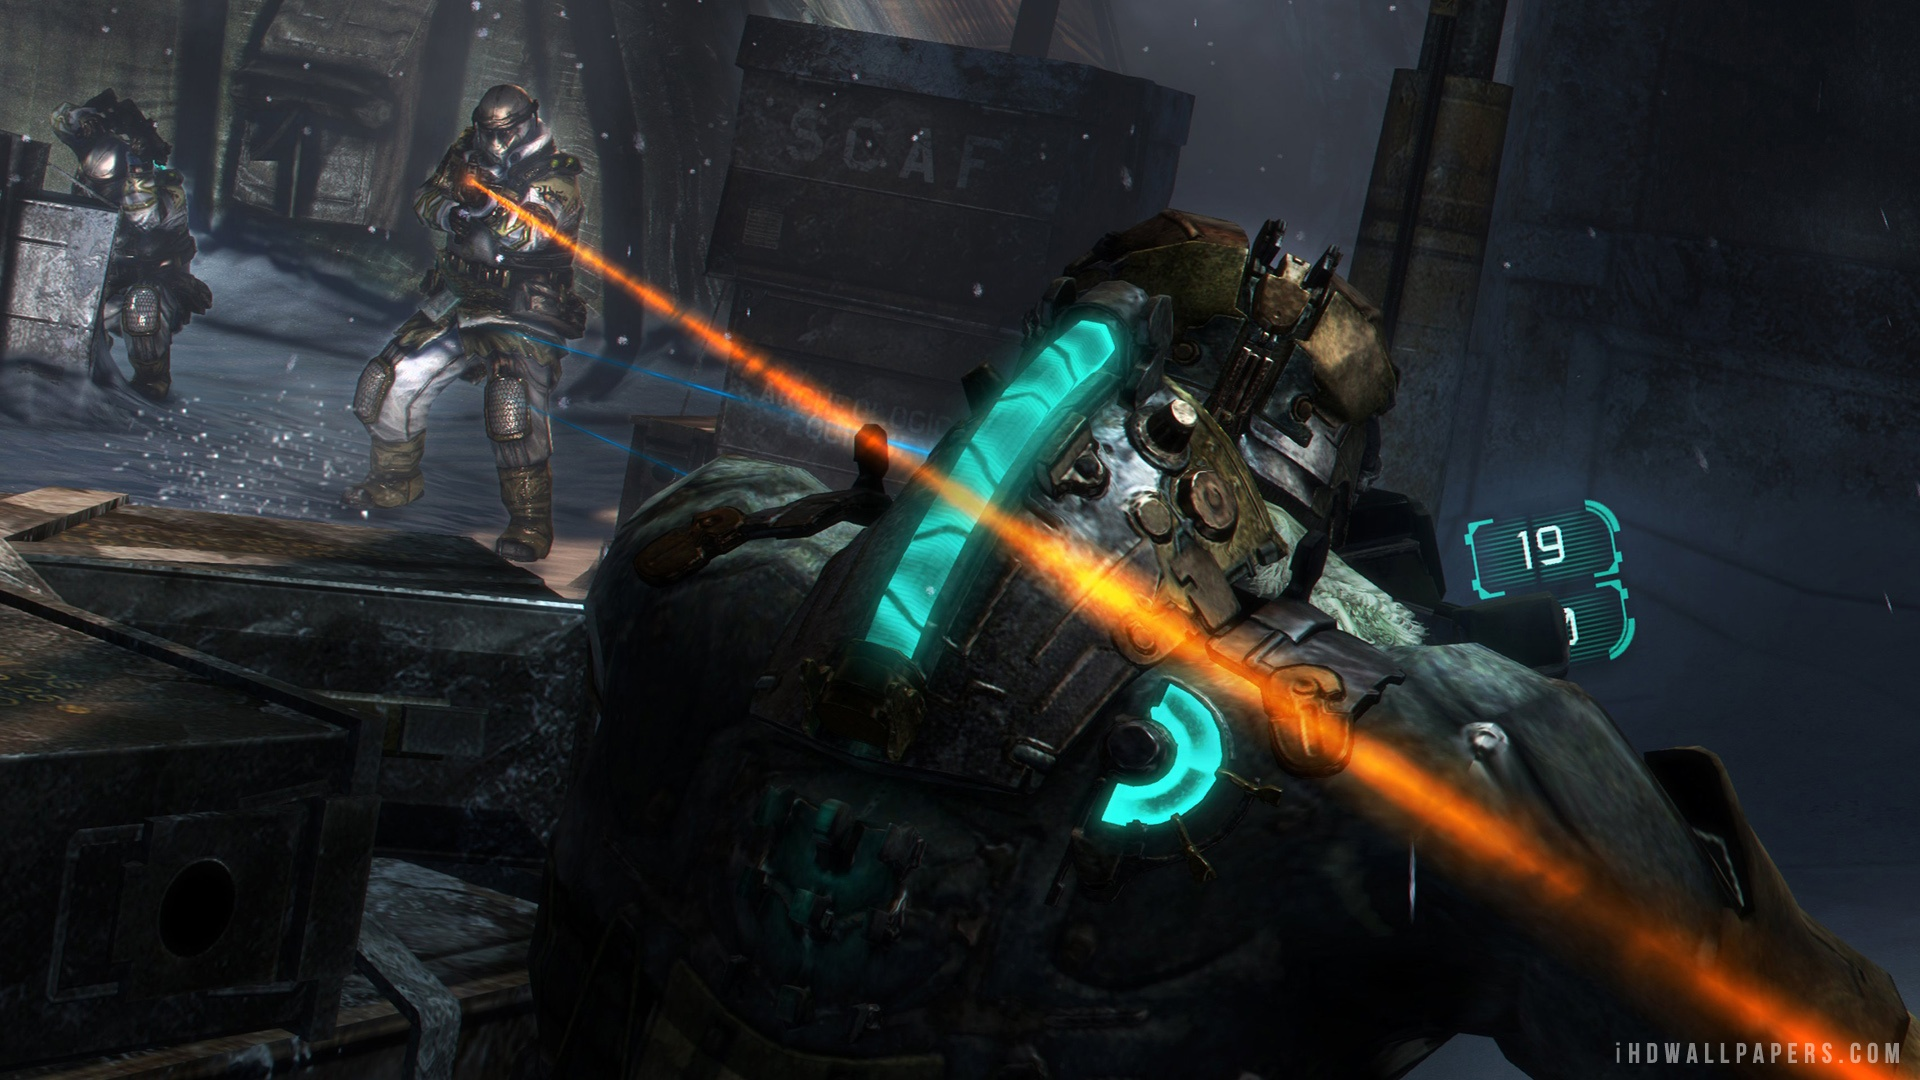 : Download Dead Space 3 Gameplay Wallpaper/Background in 1920x1080 ...